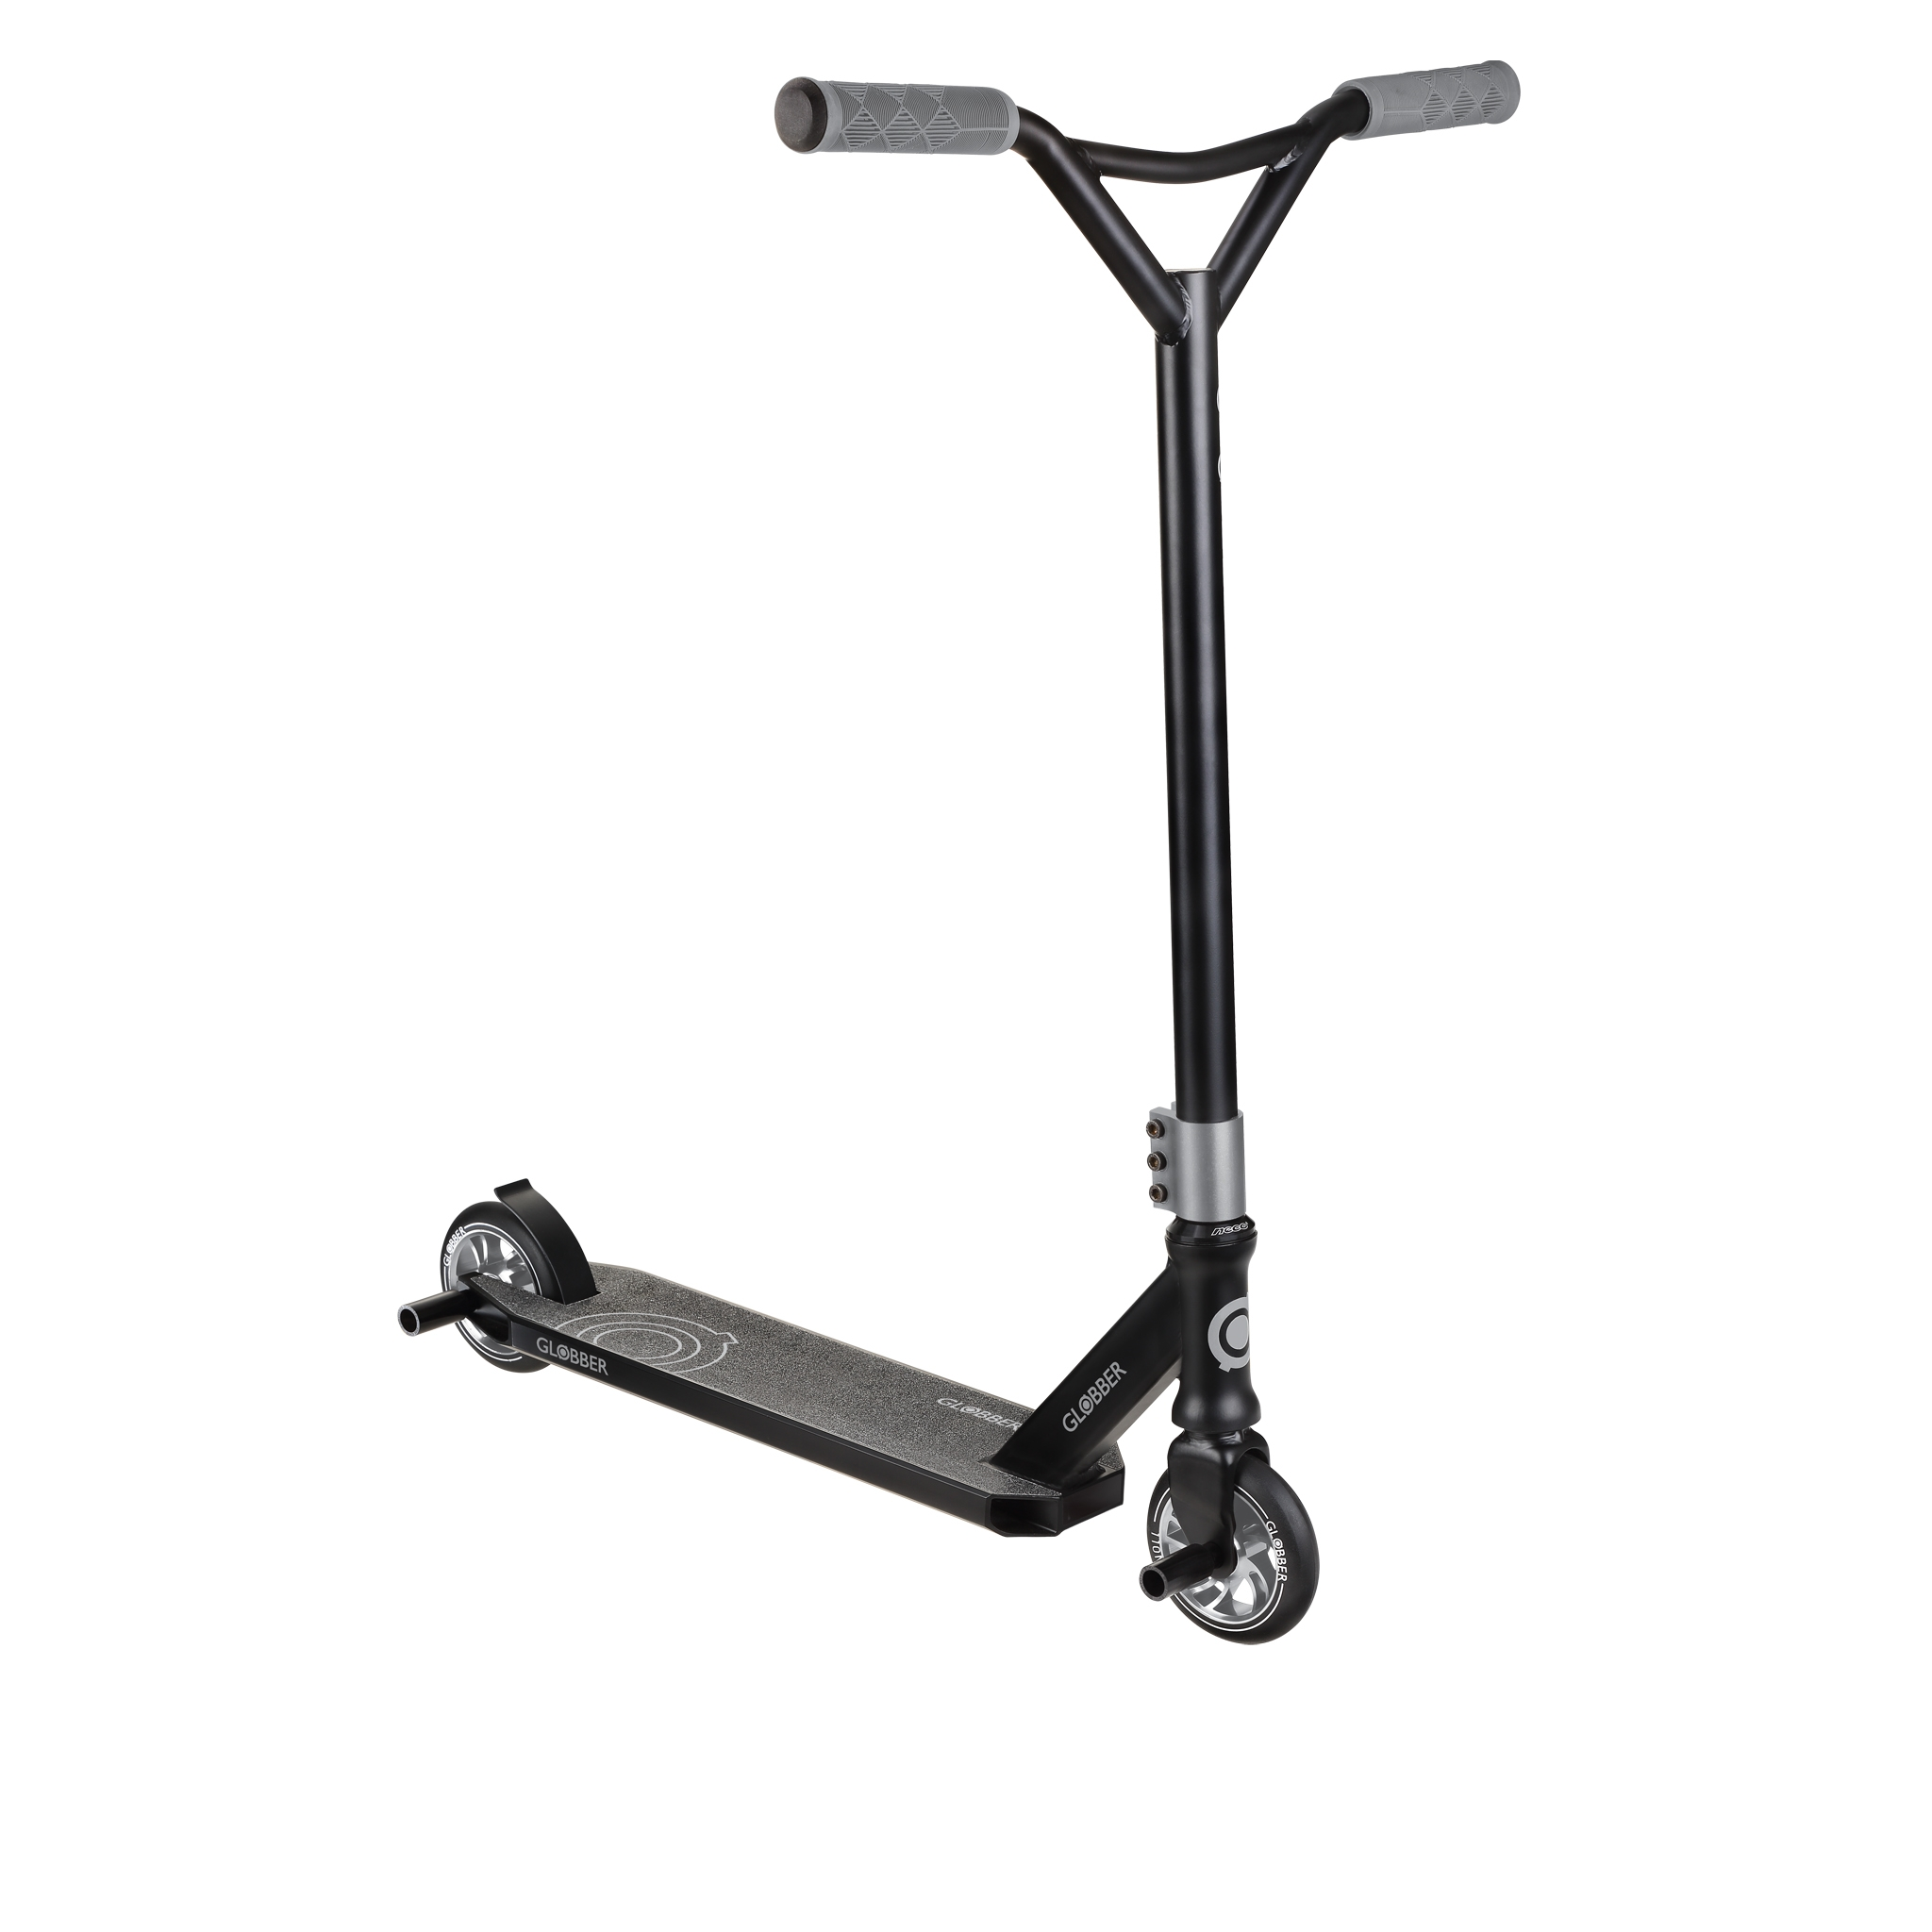 stunt scooter for teens aged 8+ - Globber GS 720 0